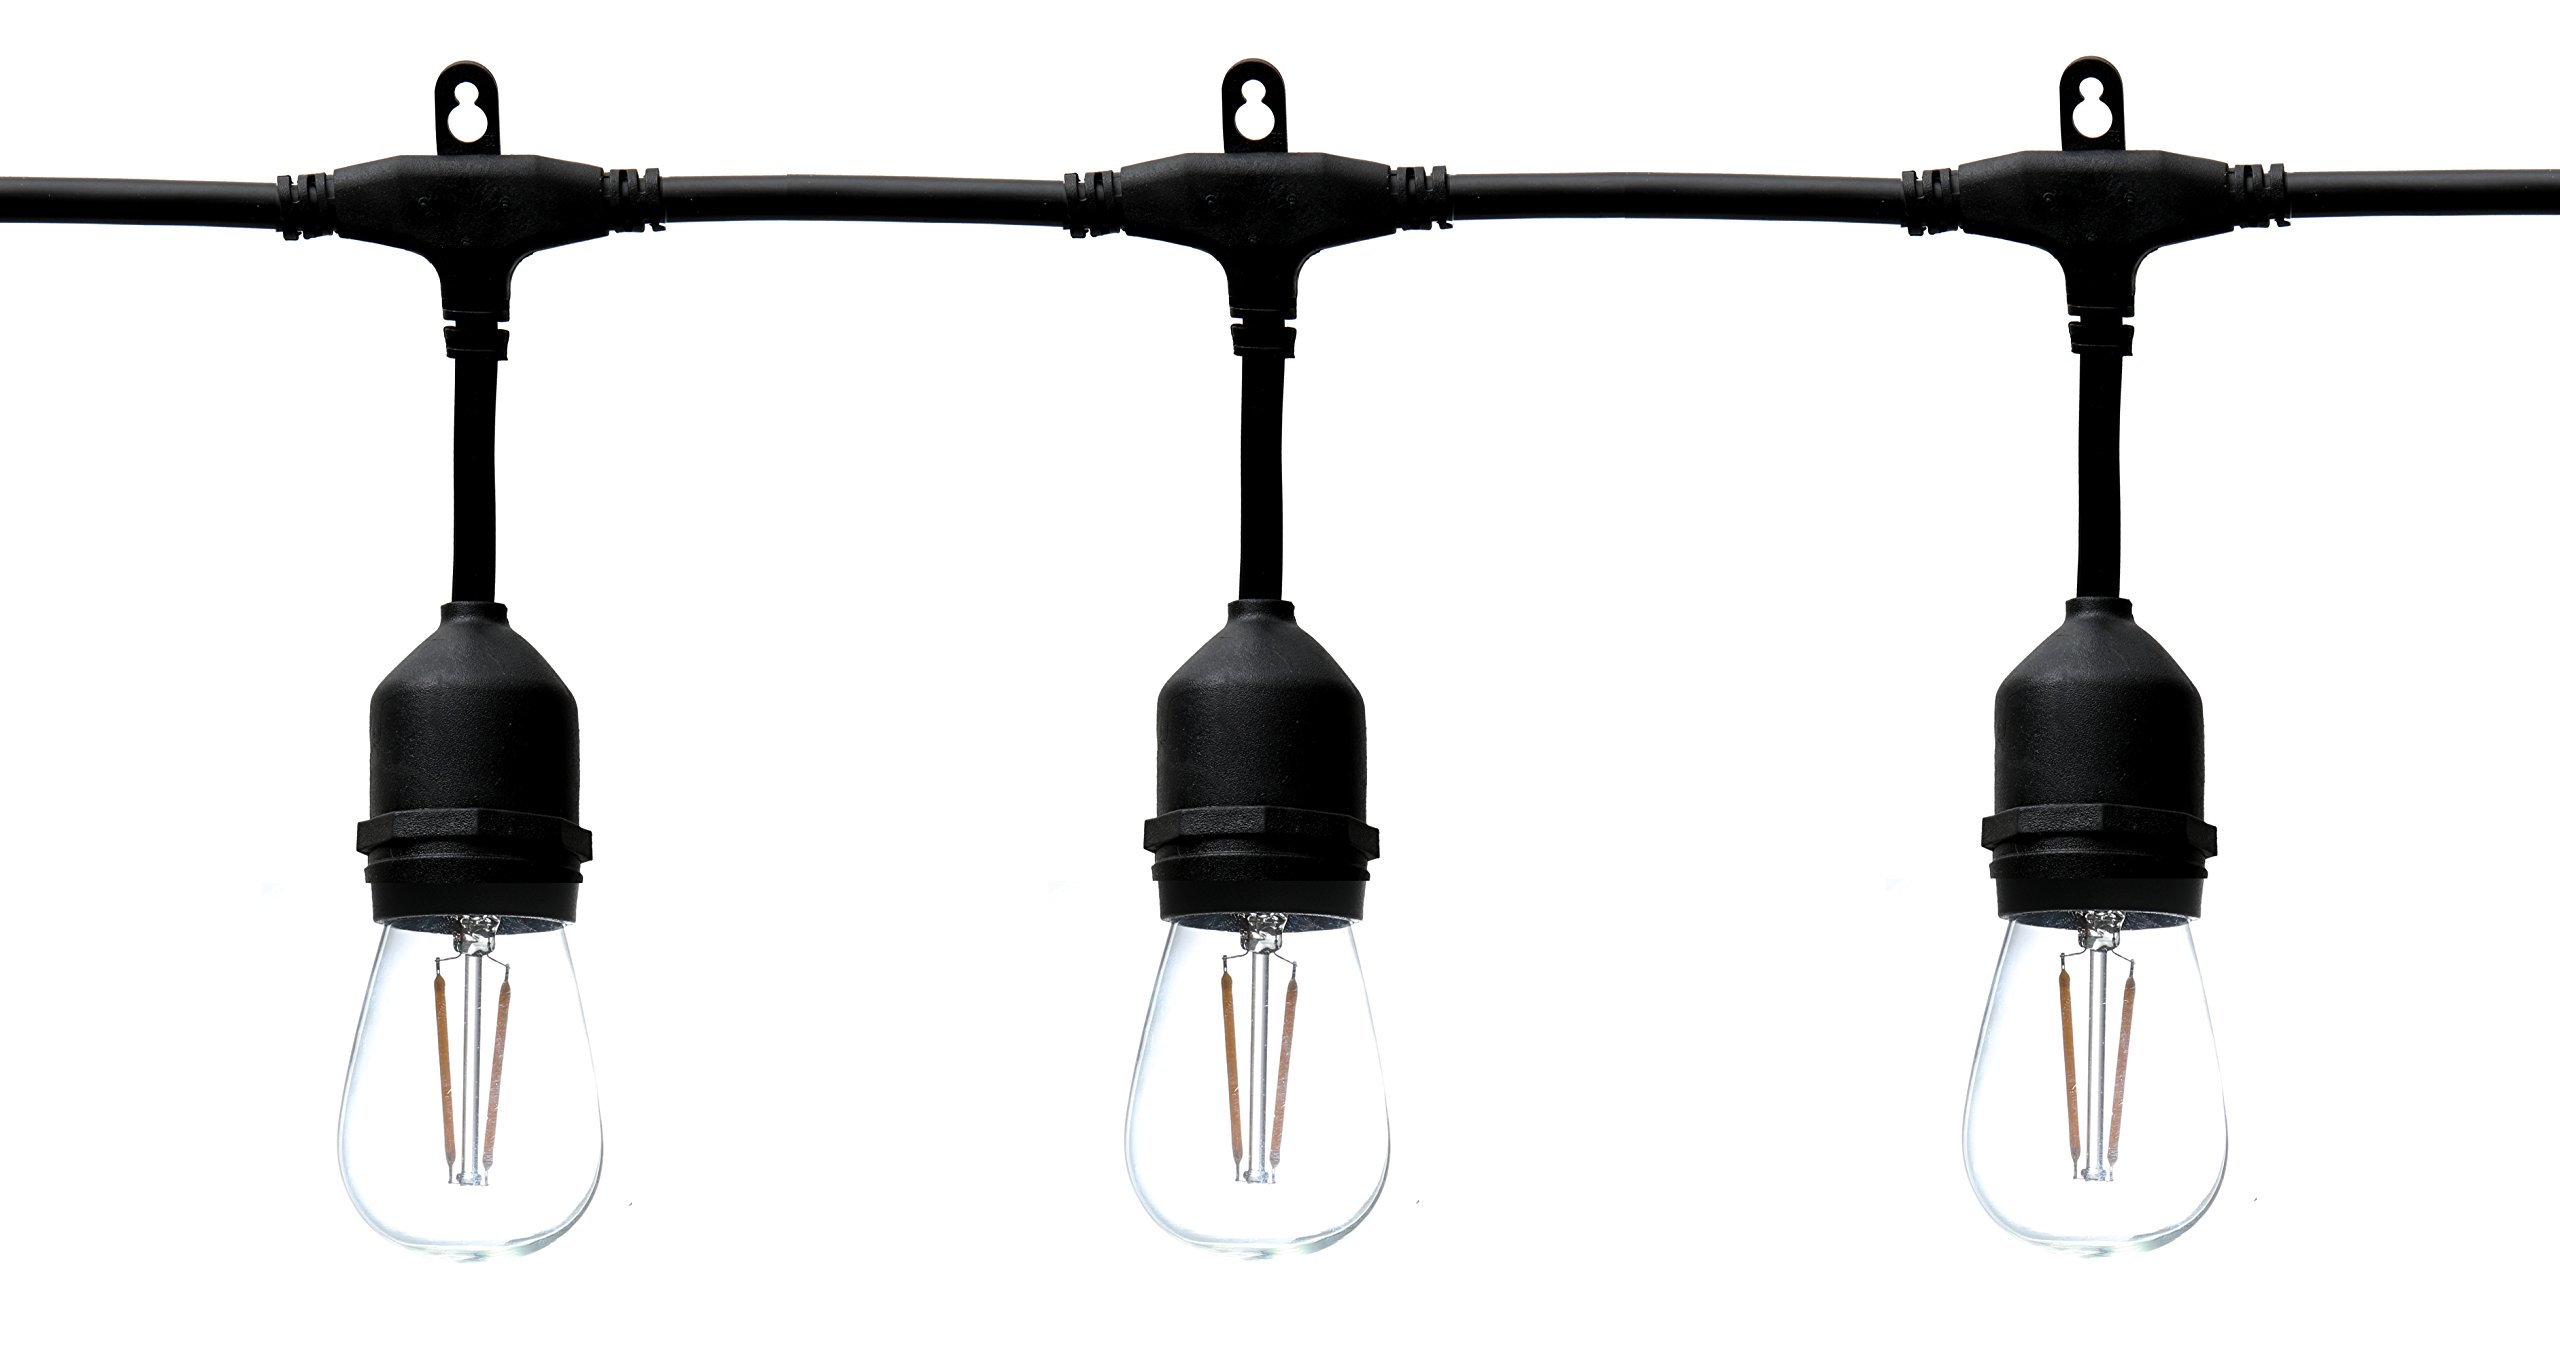 KOR LED Weather-Proof Commercial Grade LED Outdoor String Lights - 48 Ft Long with 15 Hanging Sockets - 18 LED 2-Watt Filament Bulbs (3 Extra LED Bulbs Included) – Patio Edison Vintage S11